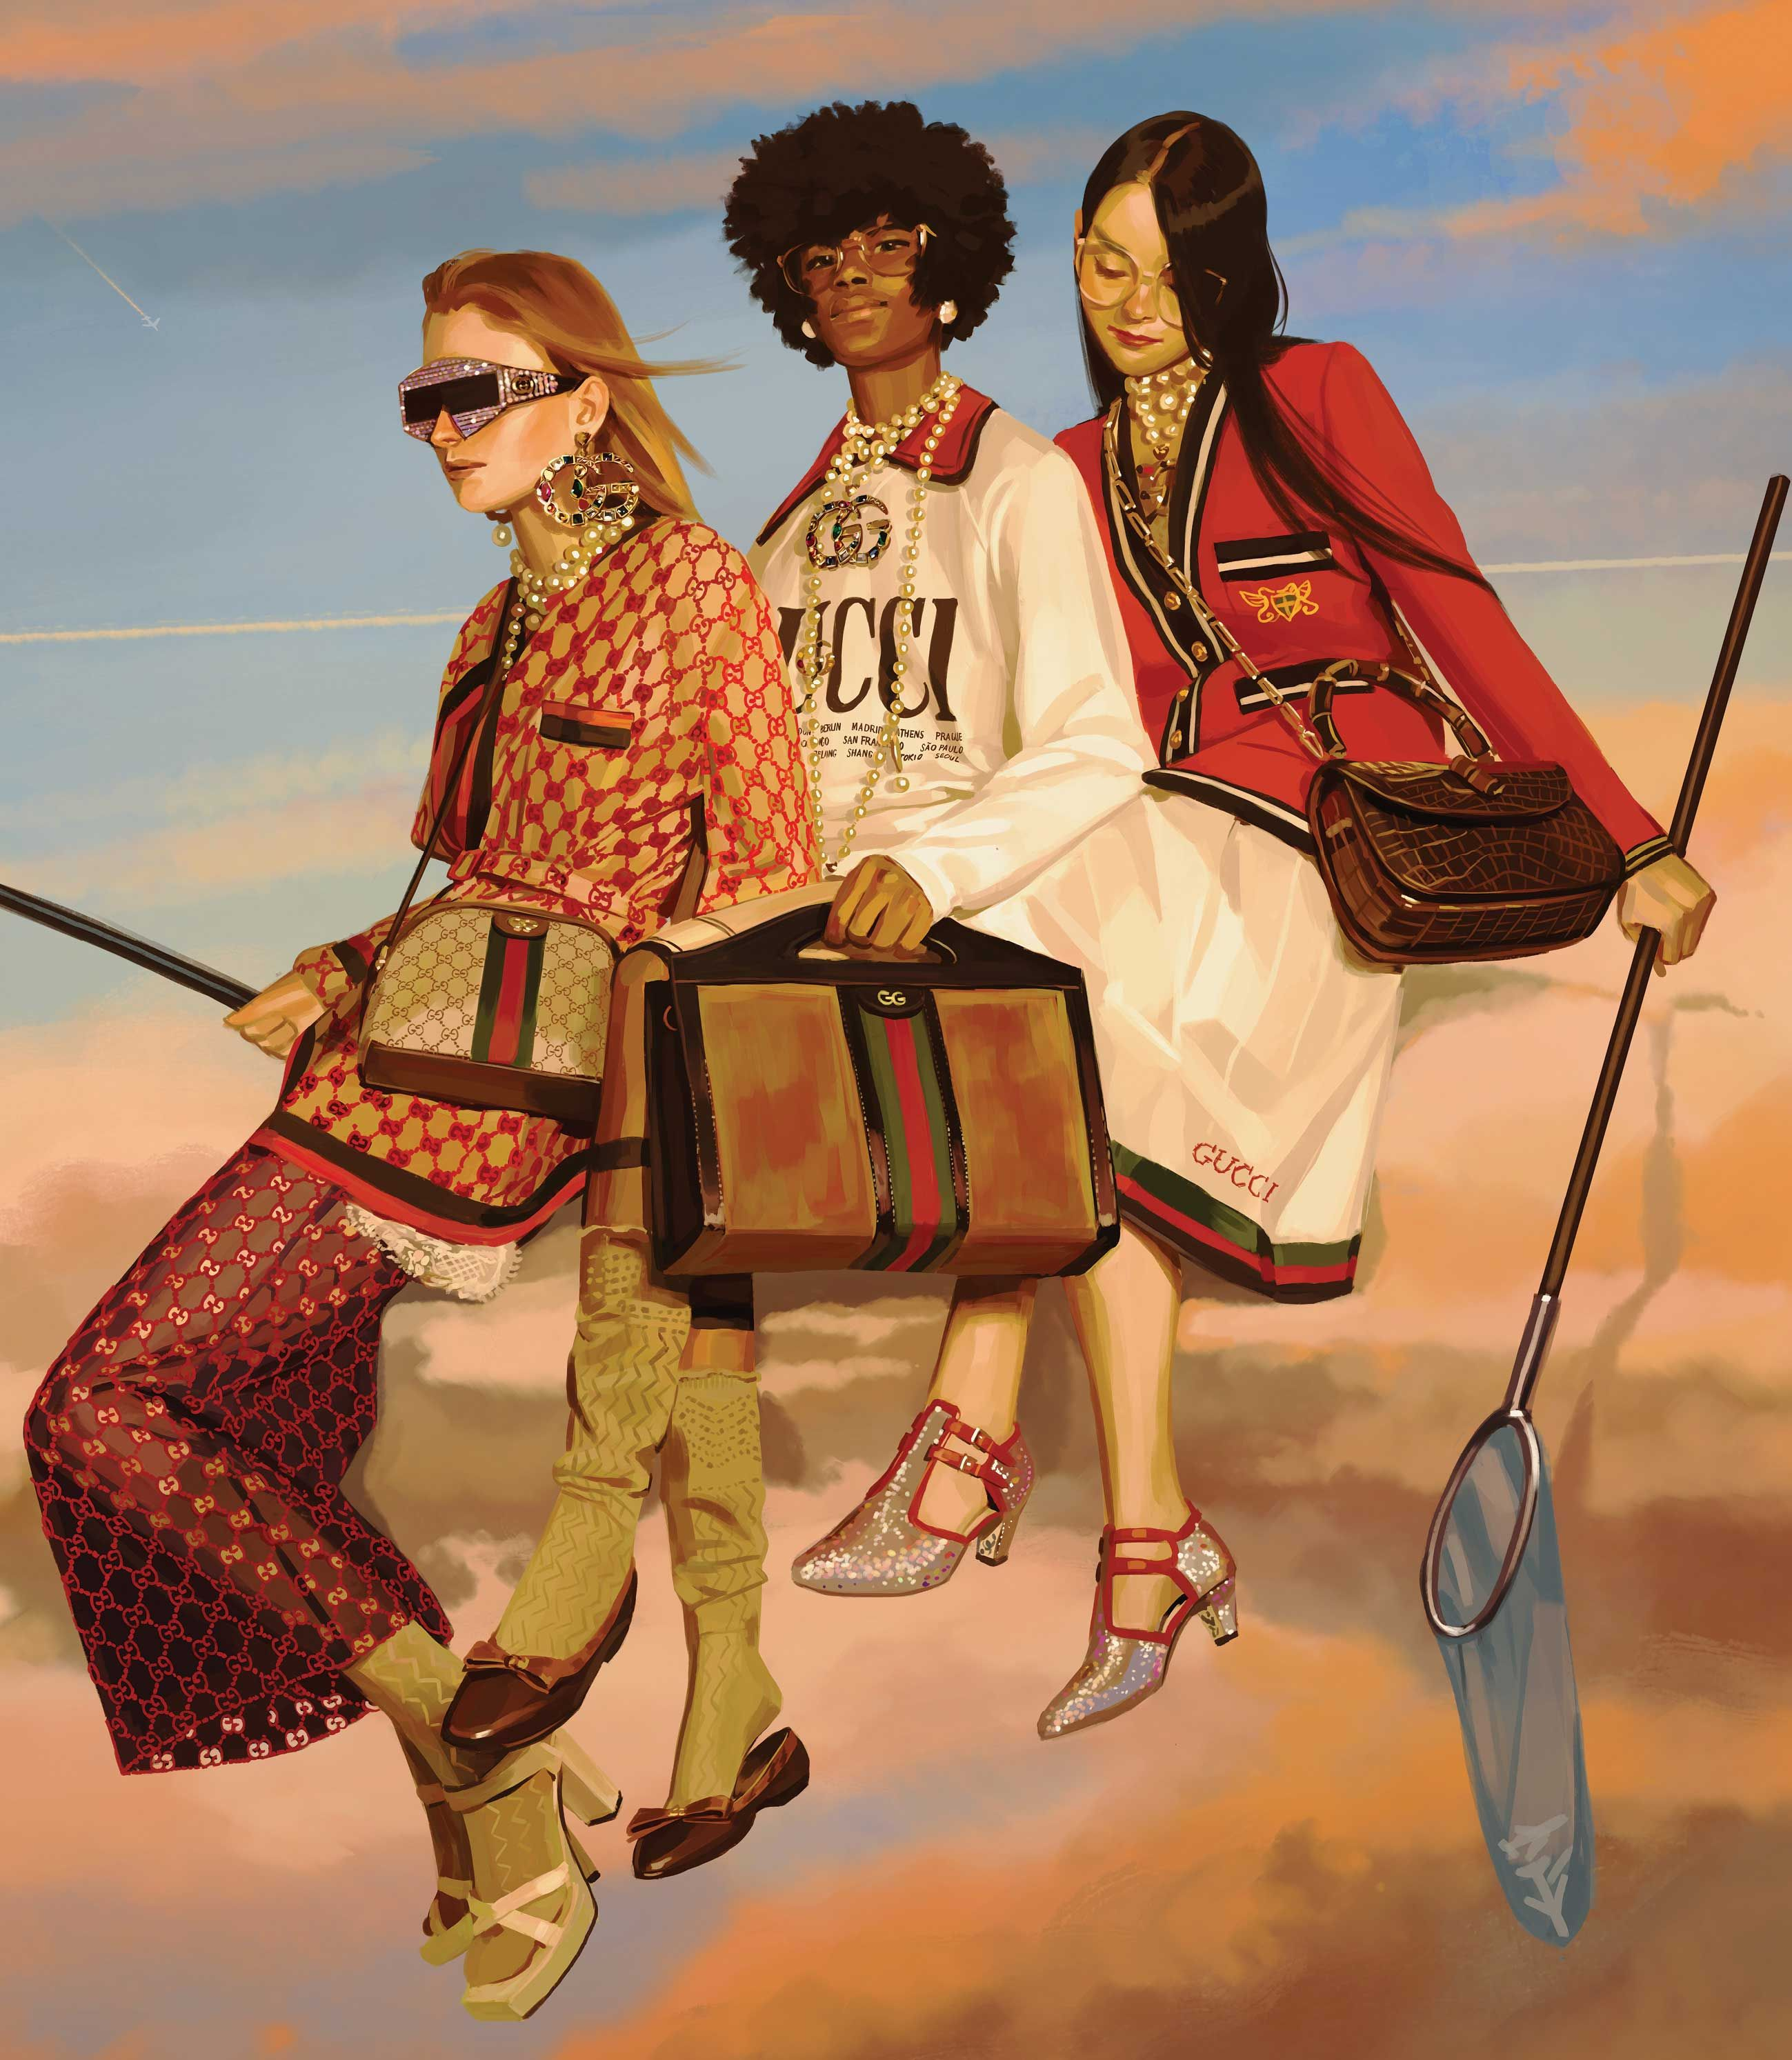 d93bb383134 Gucci Spring Summer 2018 advertising campaign